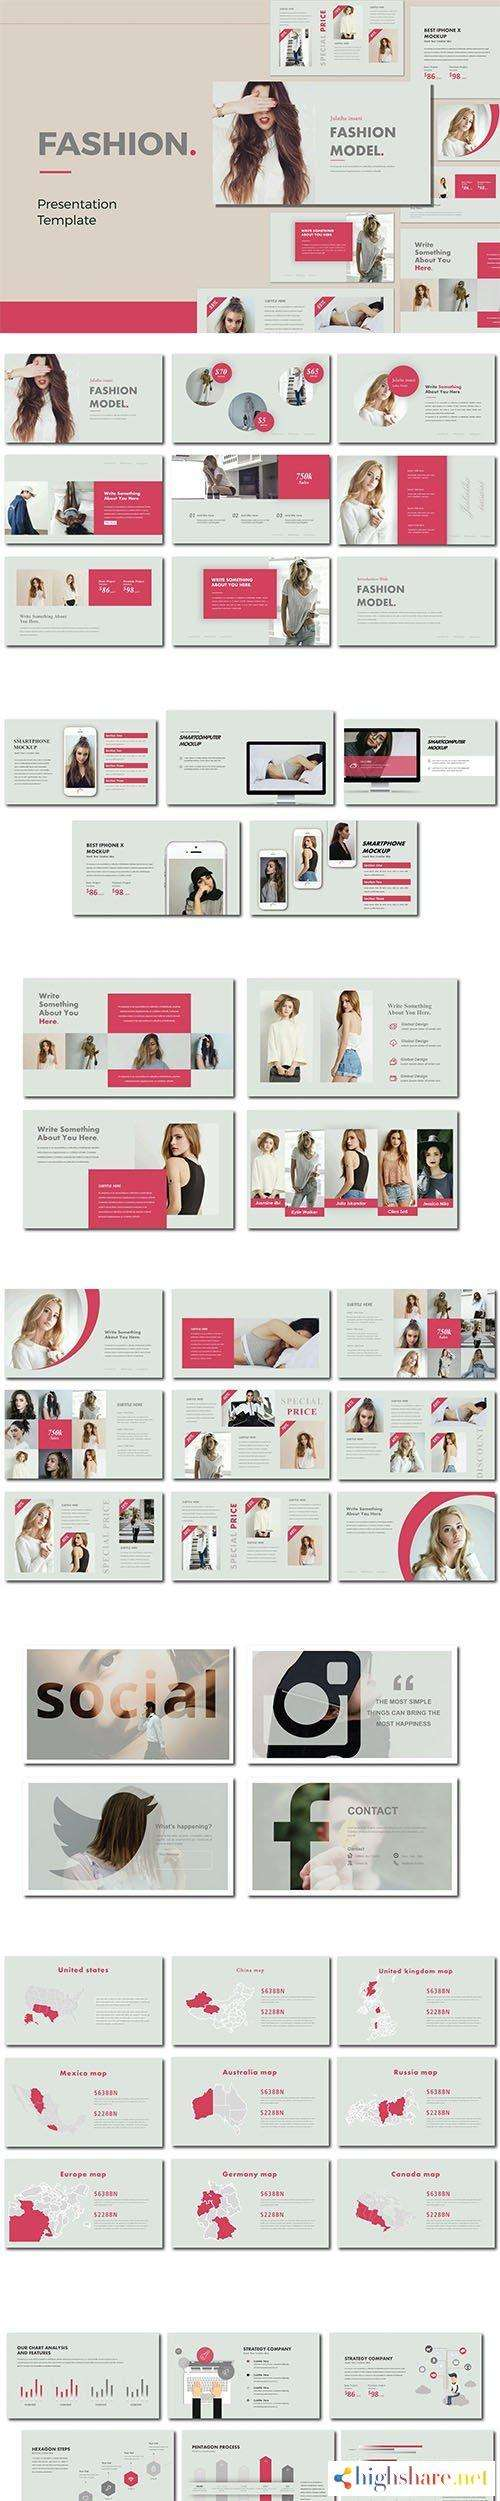 fashion powerpoint and google sliders template 5f4340efd2efa - FASHION - Powerpoint and Google Sliders Template